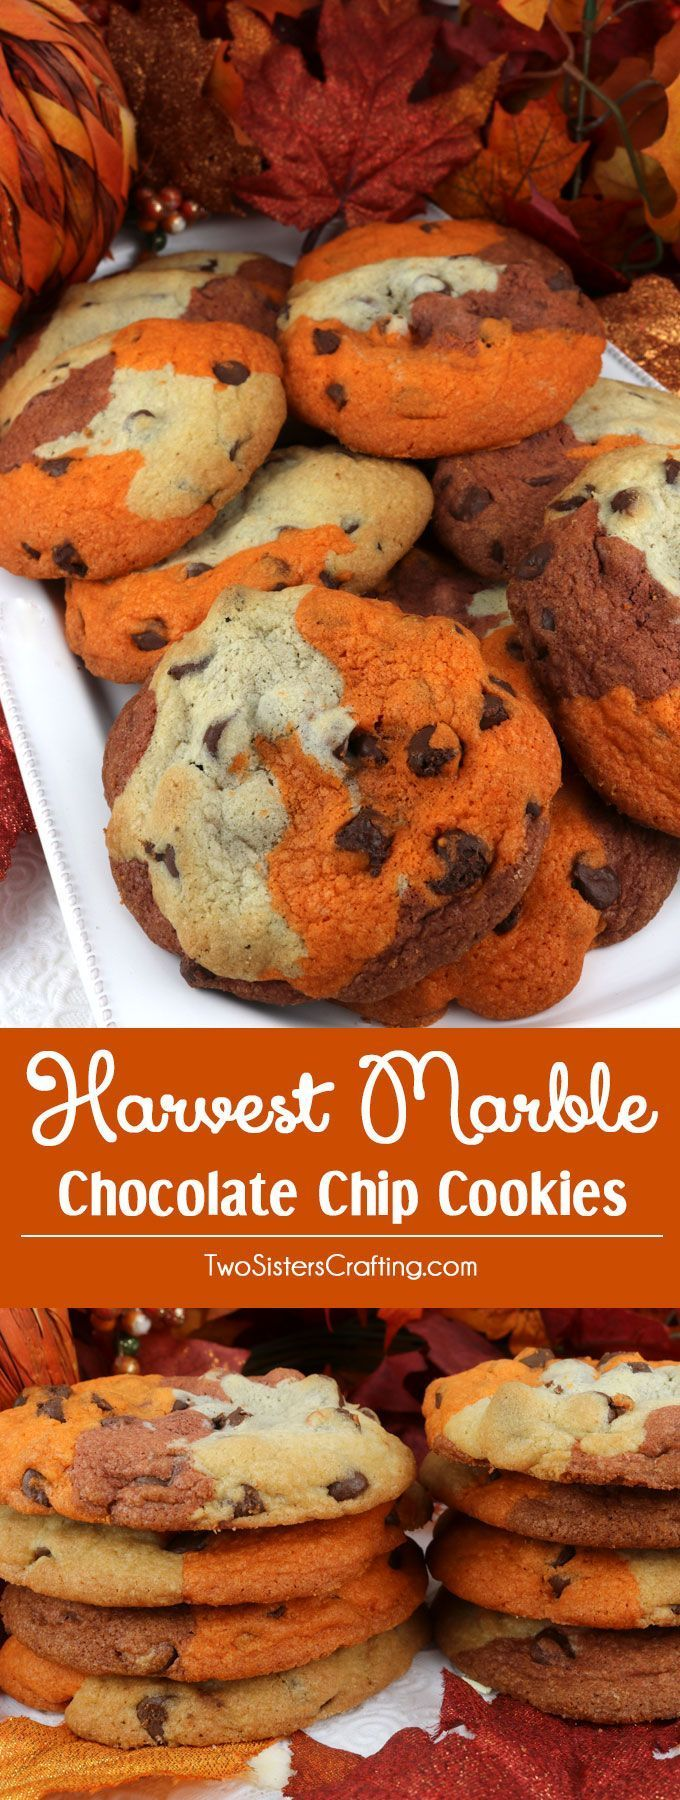 #Chip #Chocolate #Cookies #Harvest #marble Harvest Marble Chocolate Chip Cookies - a classic cookie all dressed up for Fall and Thanksgiving.  This unique and tasty Thanksgiving cookie would be great Thanksgiving dessert idea for a potluck dinner, a fall bake sale or a Christmas Cookie exchange. Pin this delicious marble cookie recipe for later and follow us for more great Thanksgiving Food ideas. #potluckrecipes